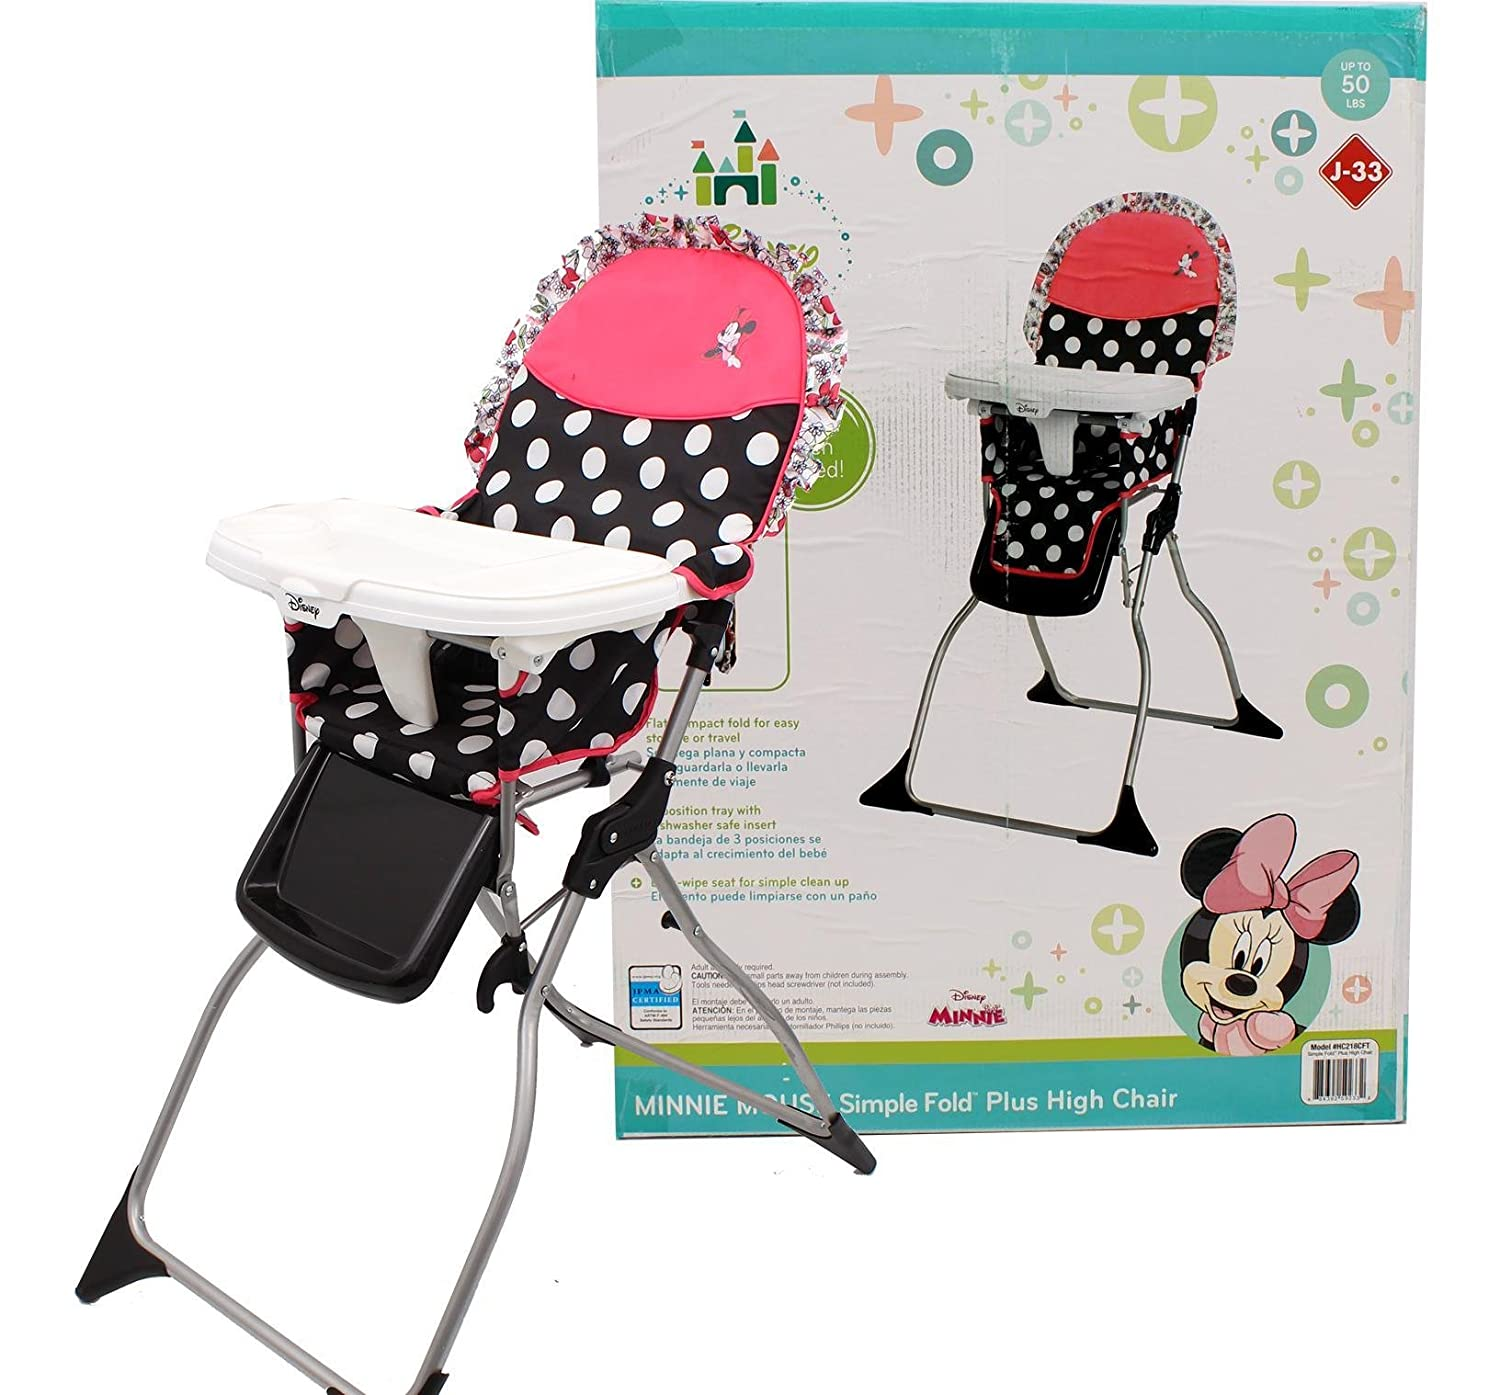 Amazon.com : Disney Baby Minnie Mouse Coral Flowers Fast Pack High Chair : Baby